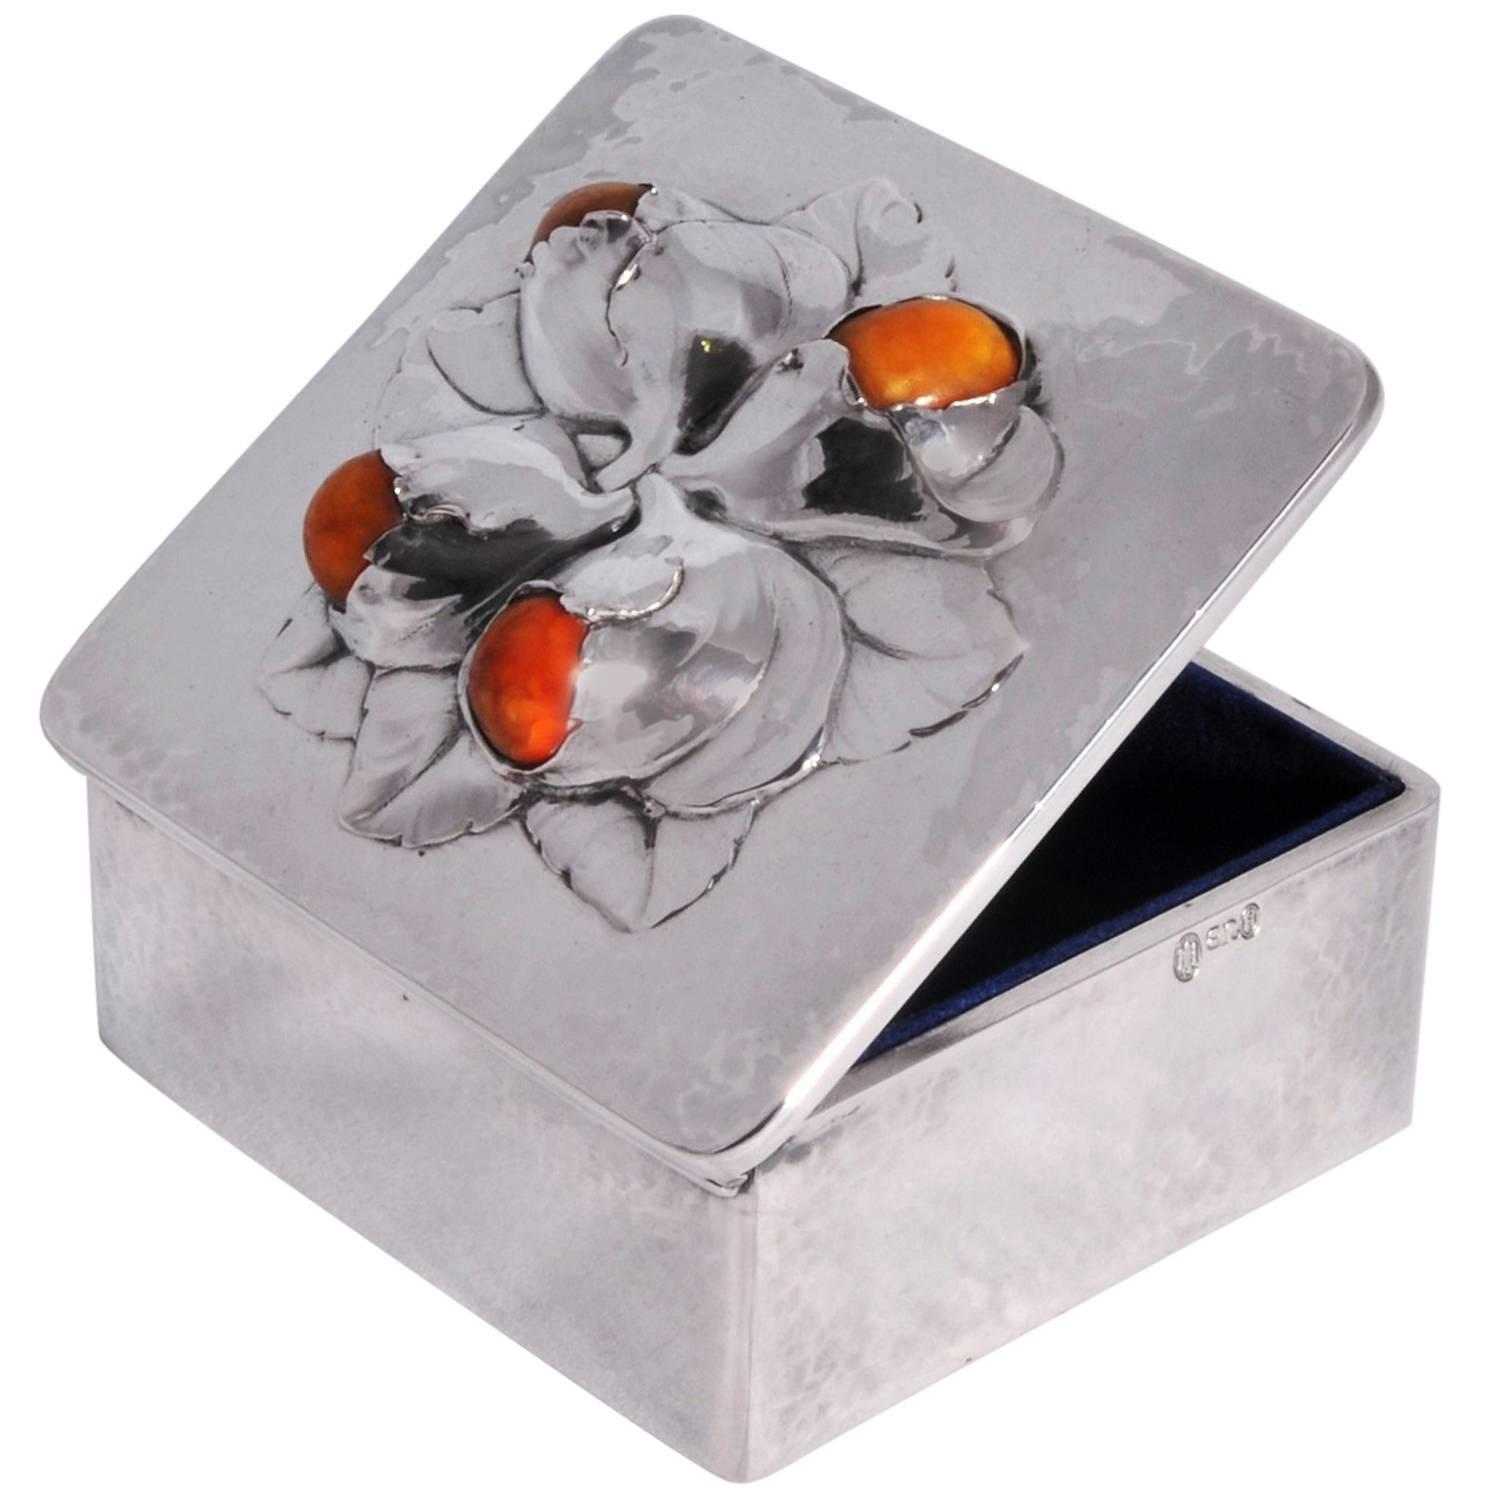 Evald Nielsen silver amber box